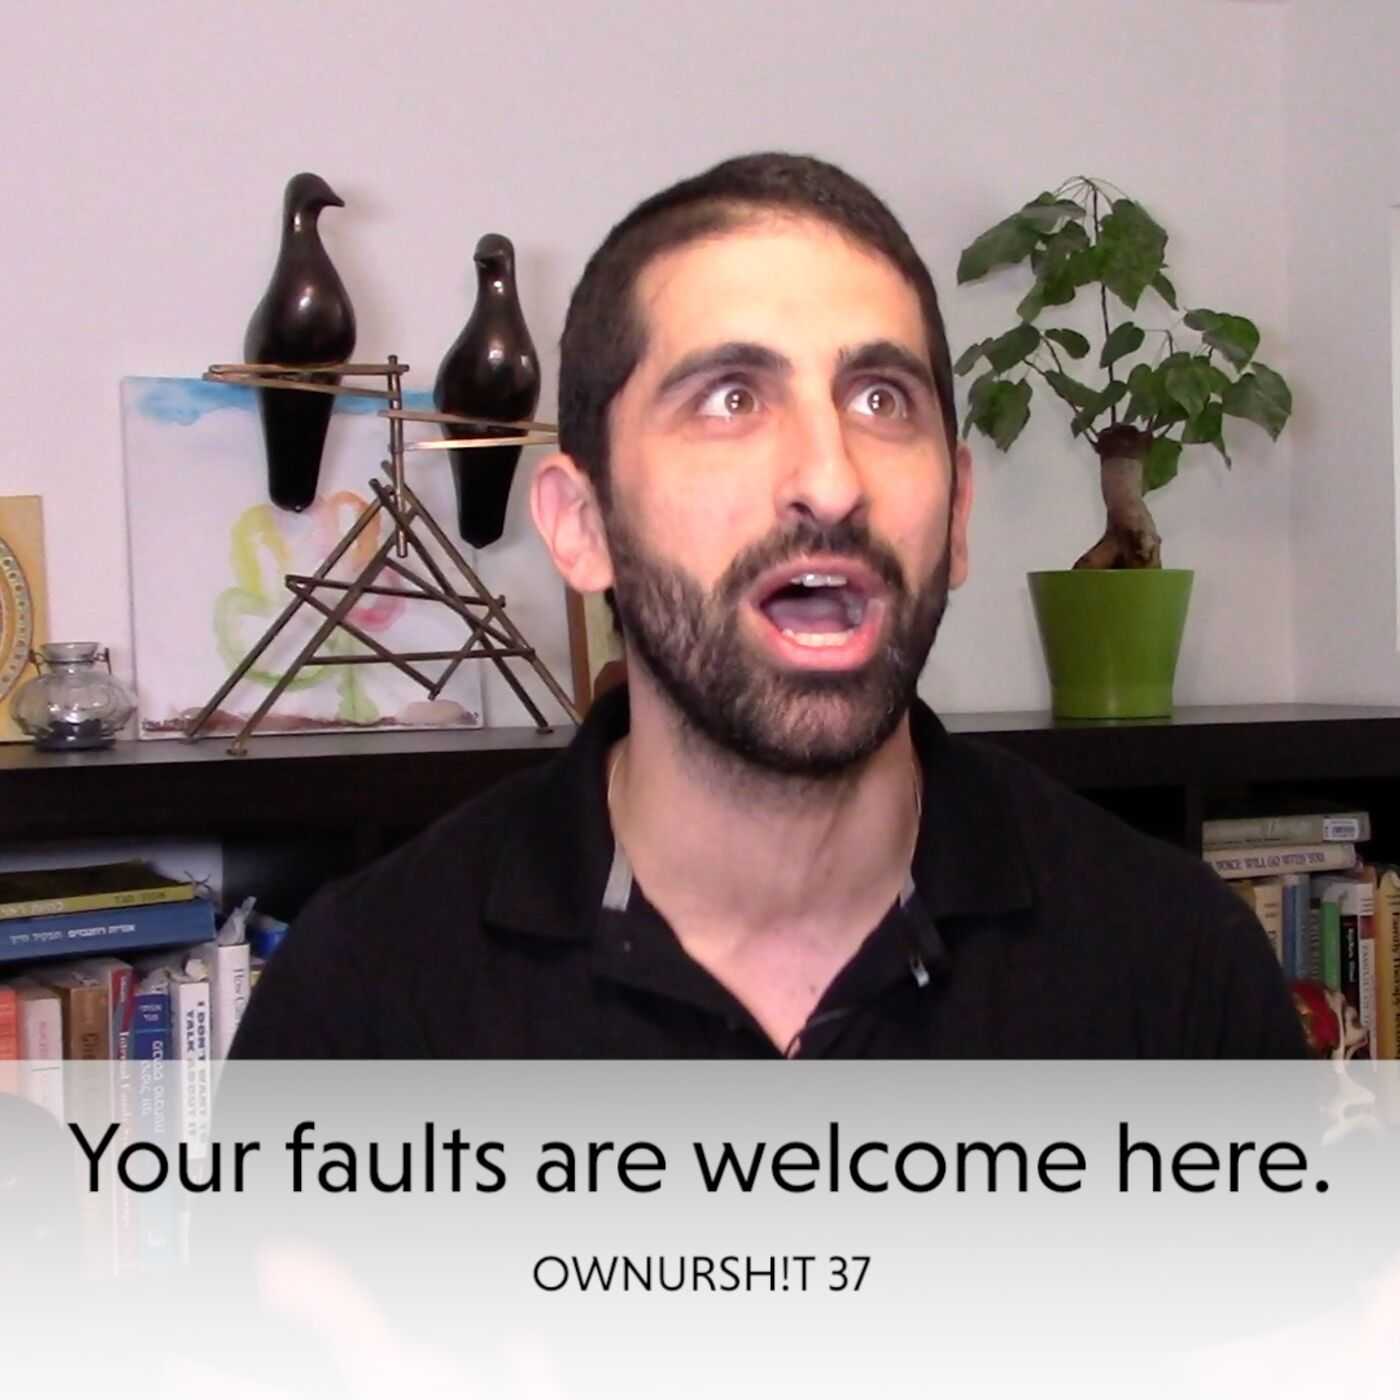 OWNURSH!T 37 - Your faults are welcome here.